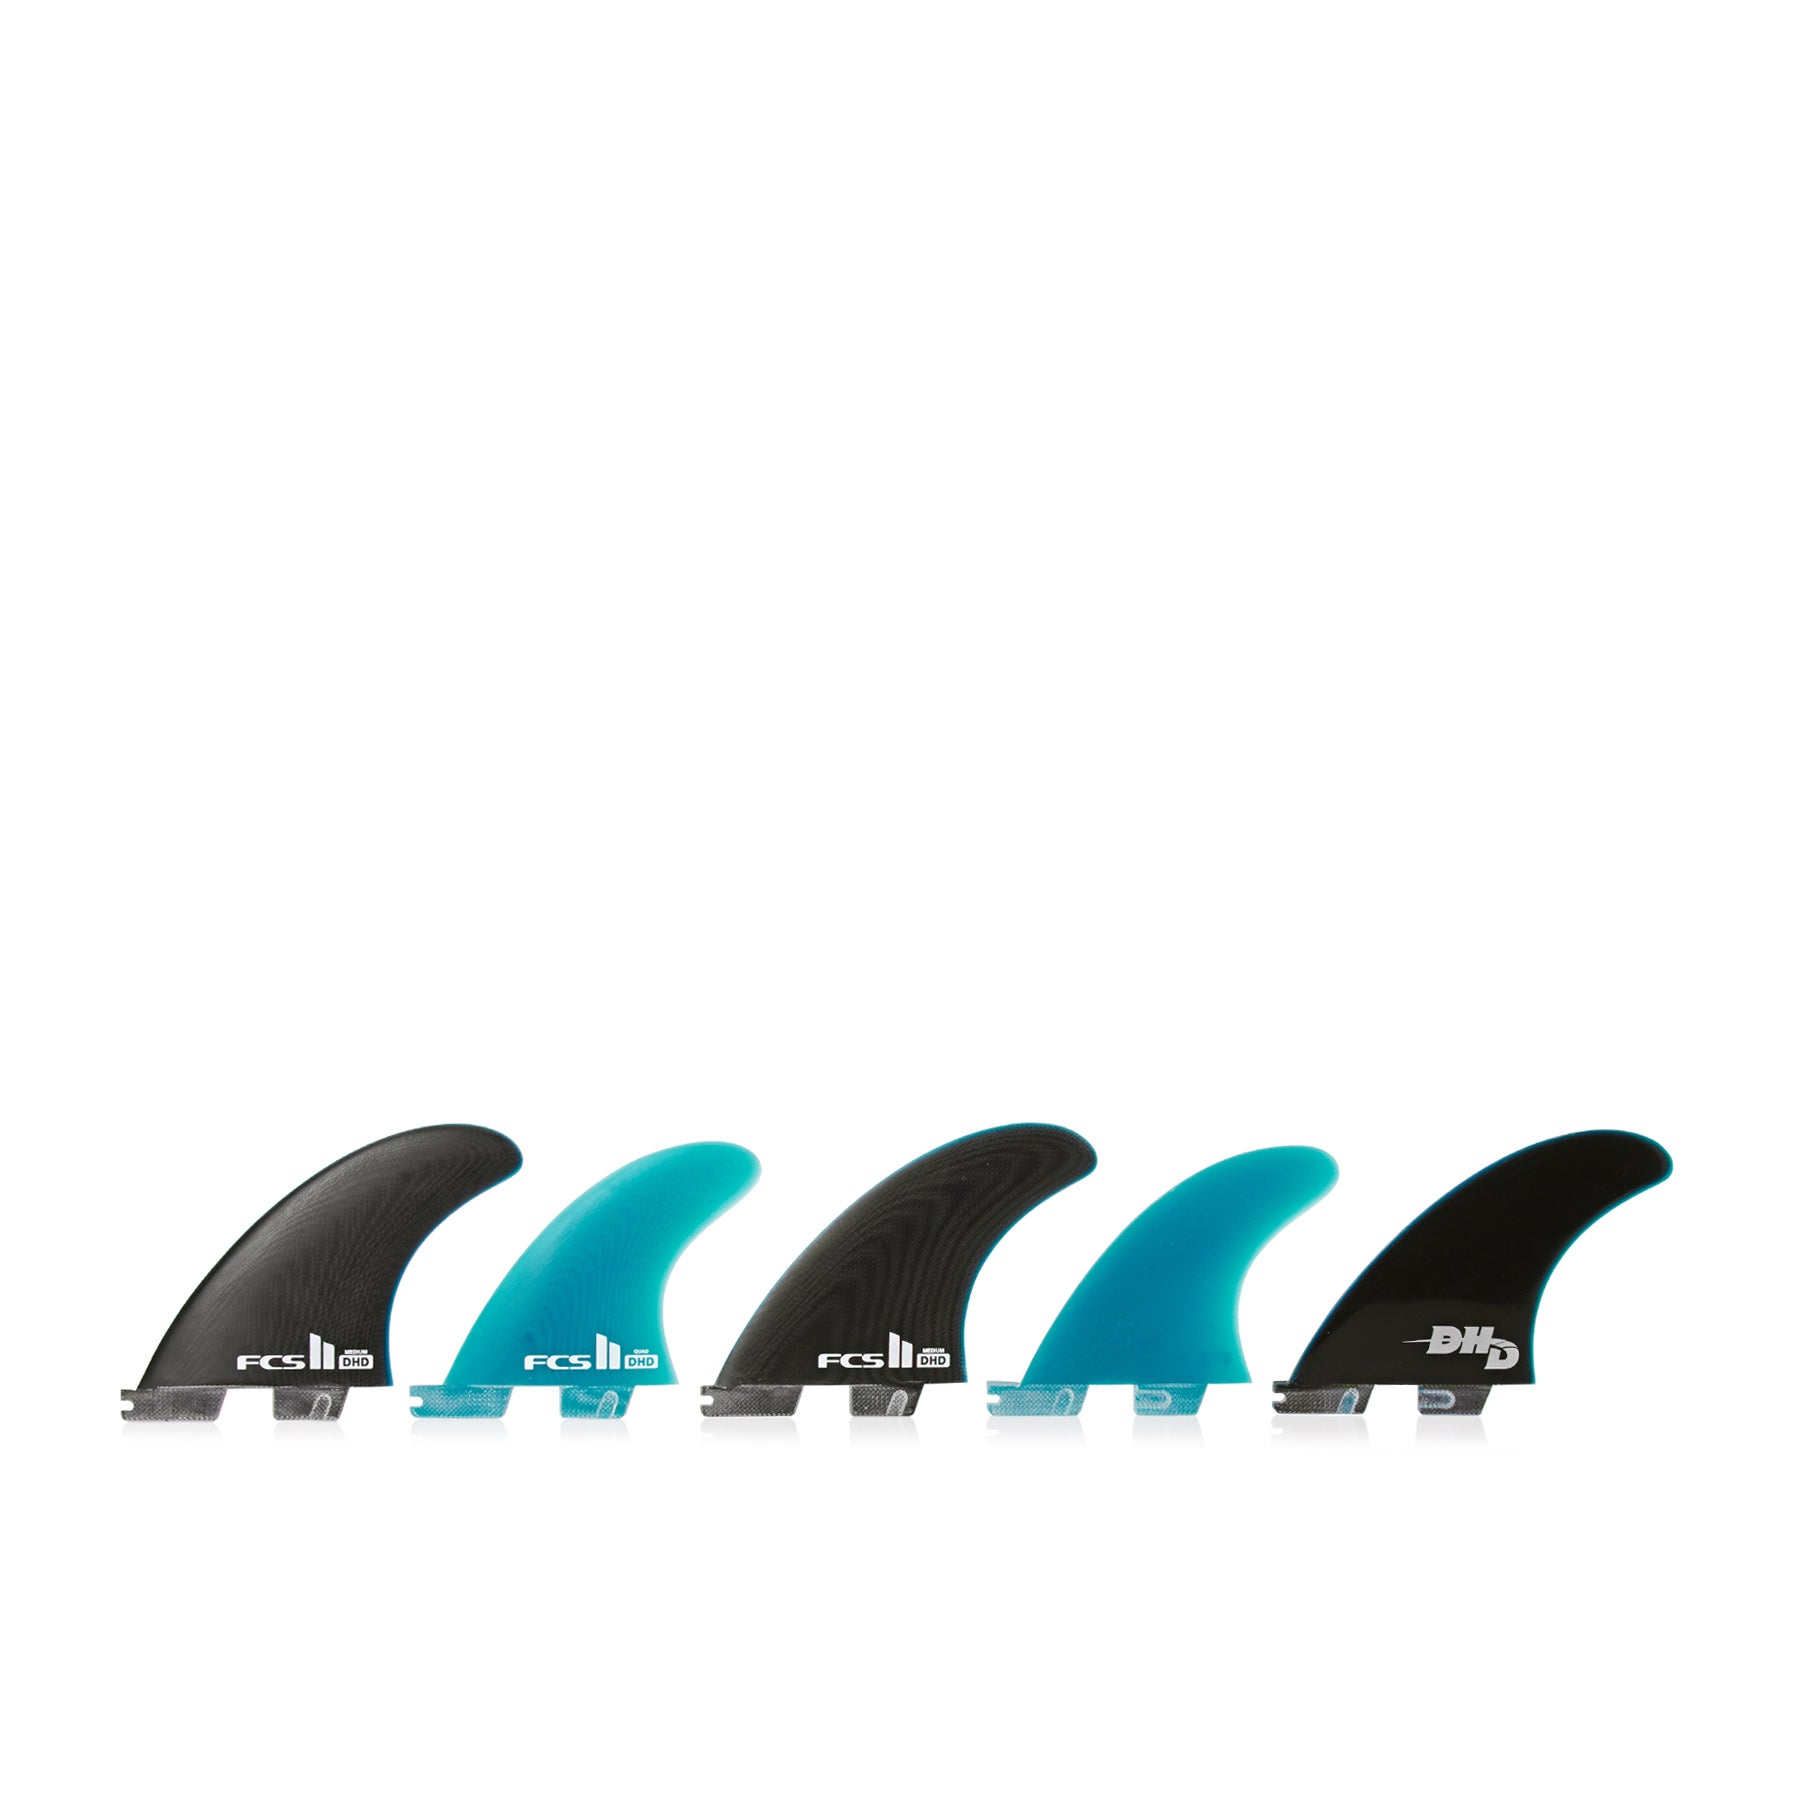 FCS II DH Performance Glass Set Of Five Fin - Black/blue